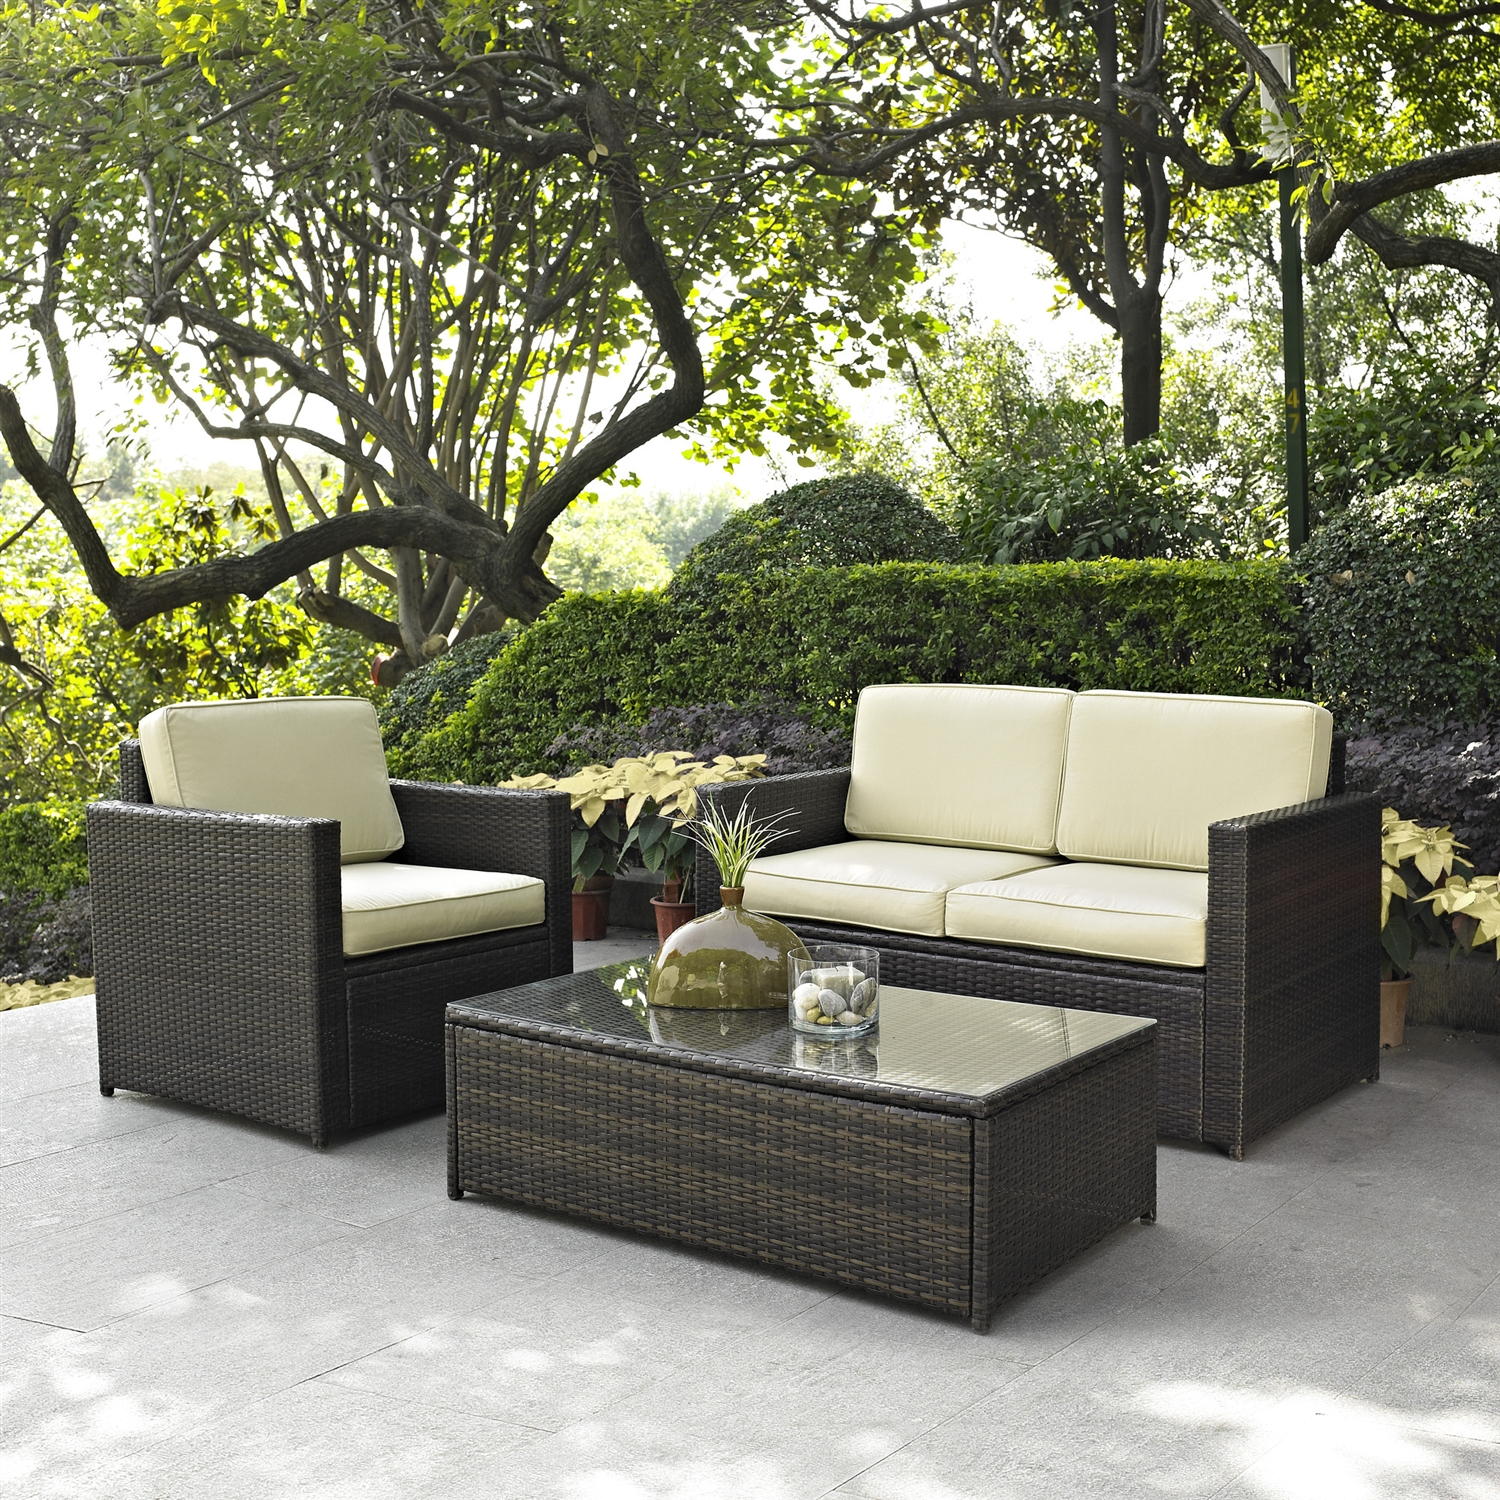 Wicker Patio Chair 3 Piece Outdoor Patio Furniture Set With Chair Loveseat And Cocktail Table